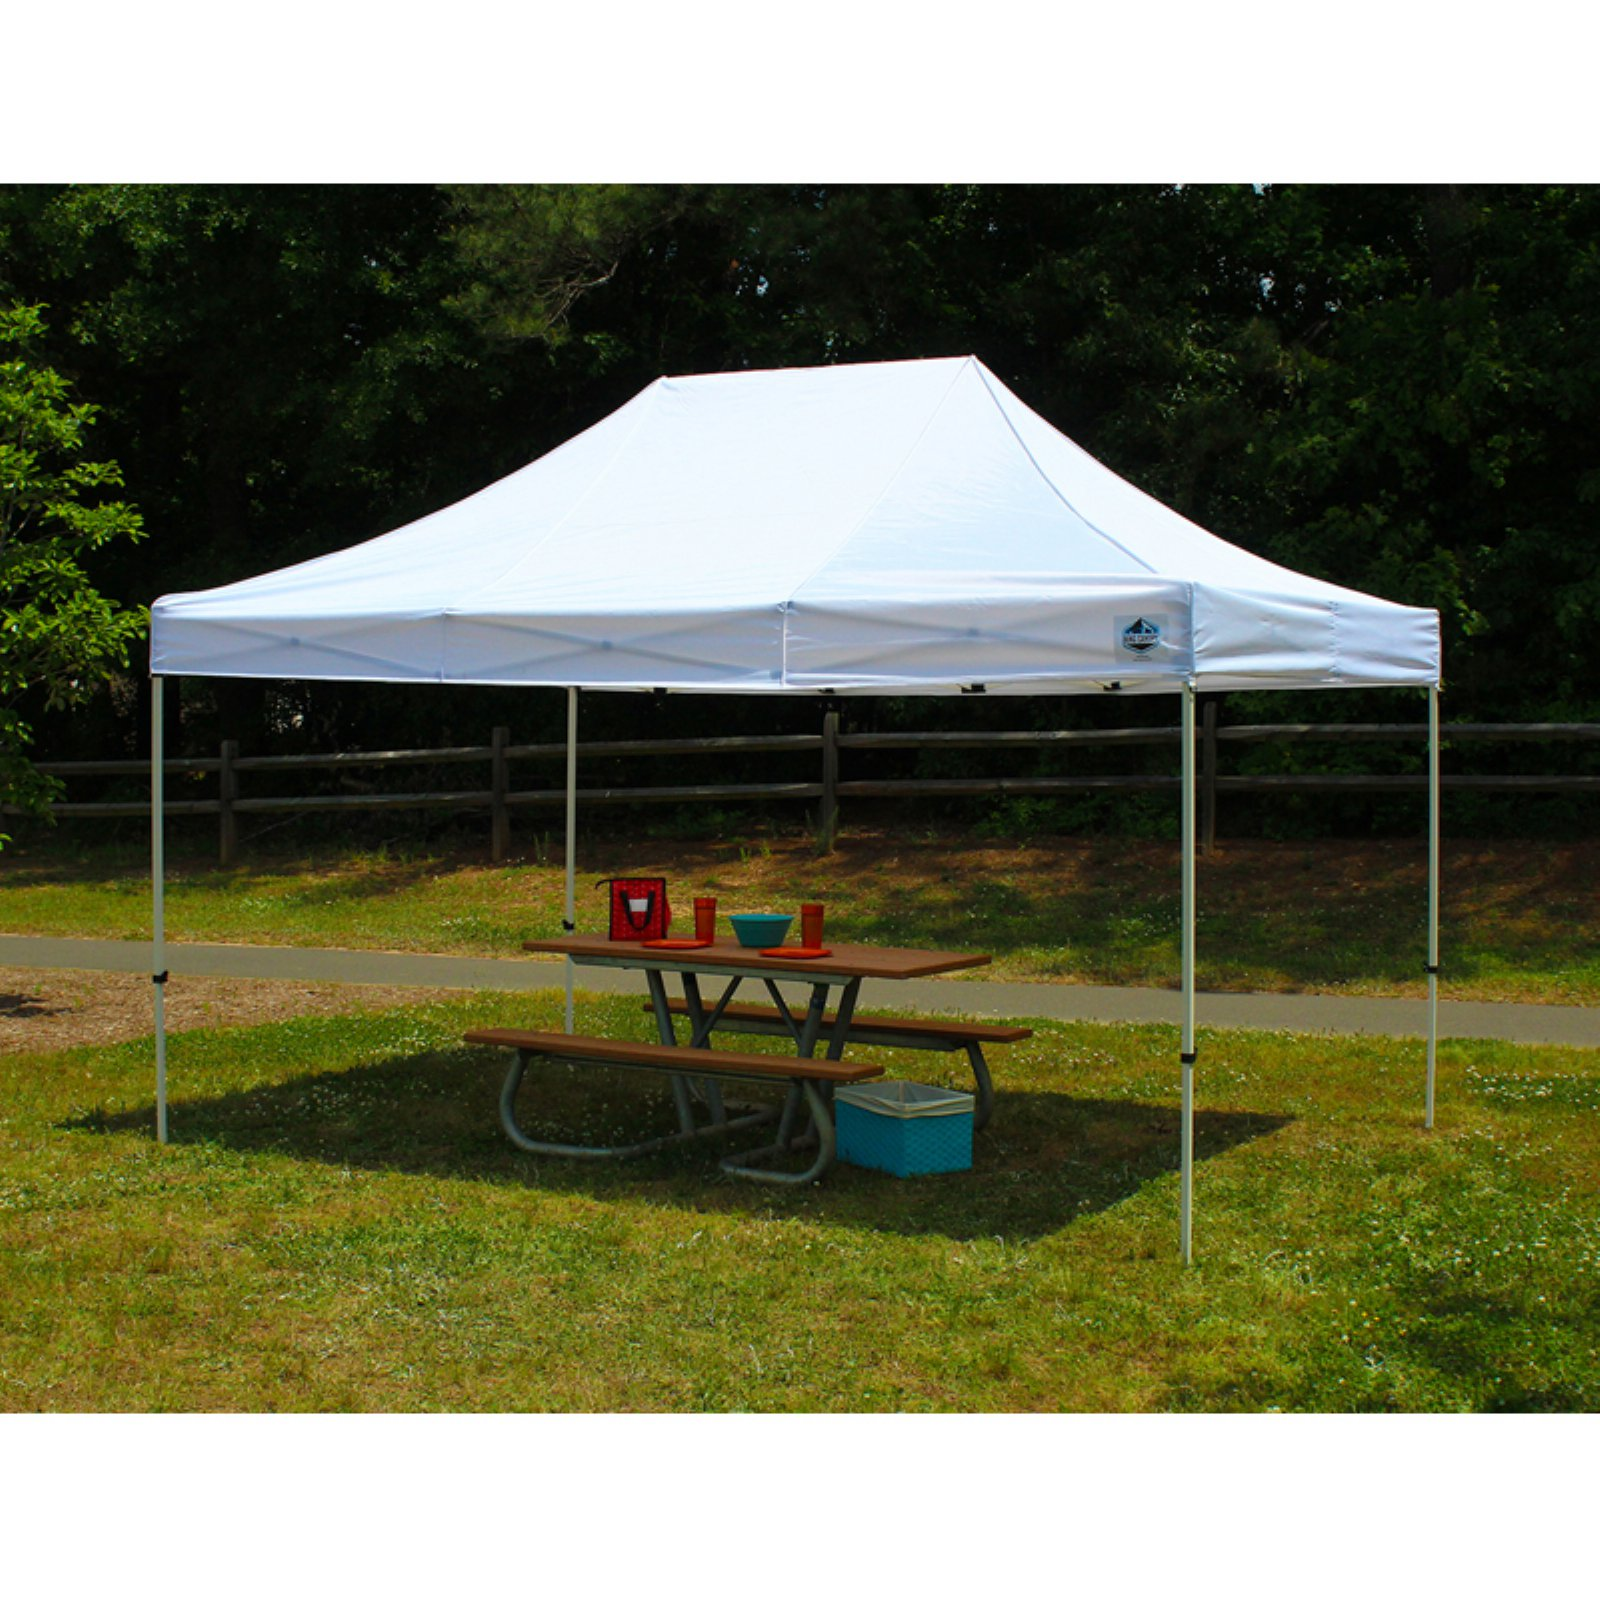 FESTIVAL 10X15 Pop Up Tent w/ WHITE Cover